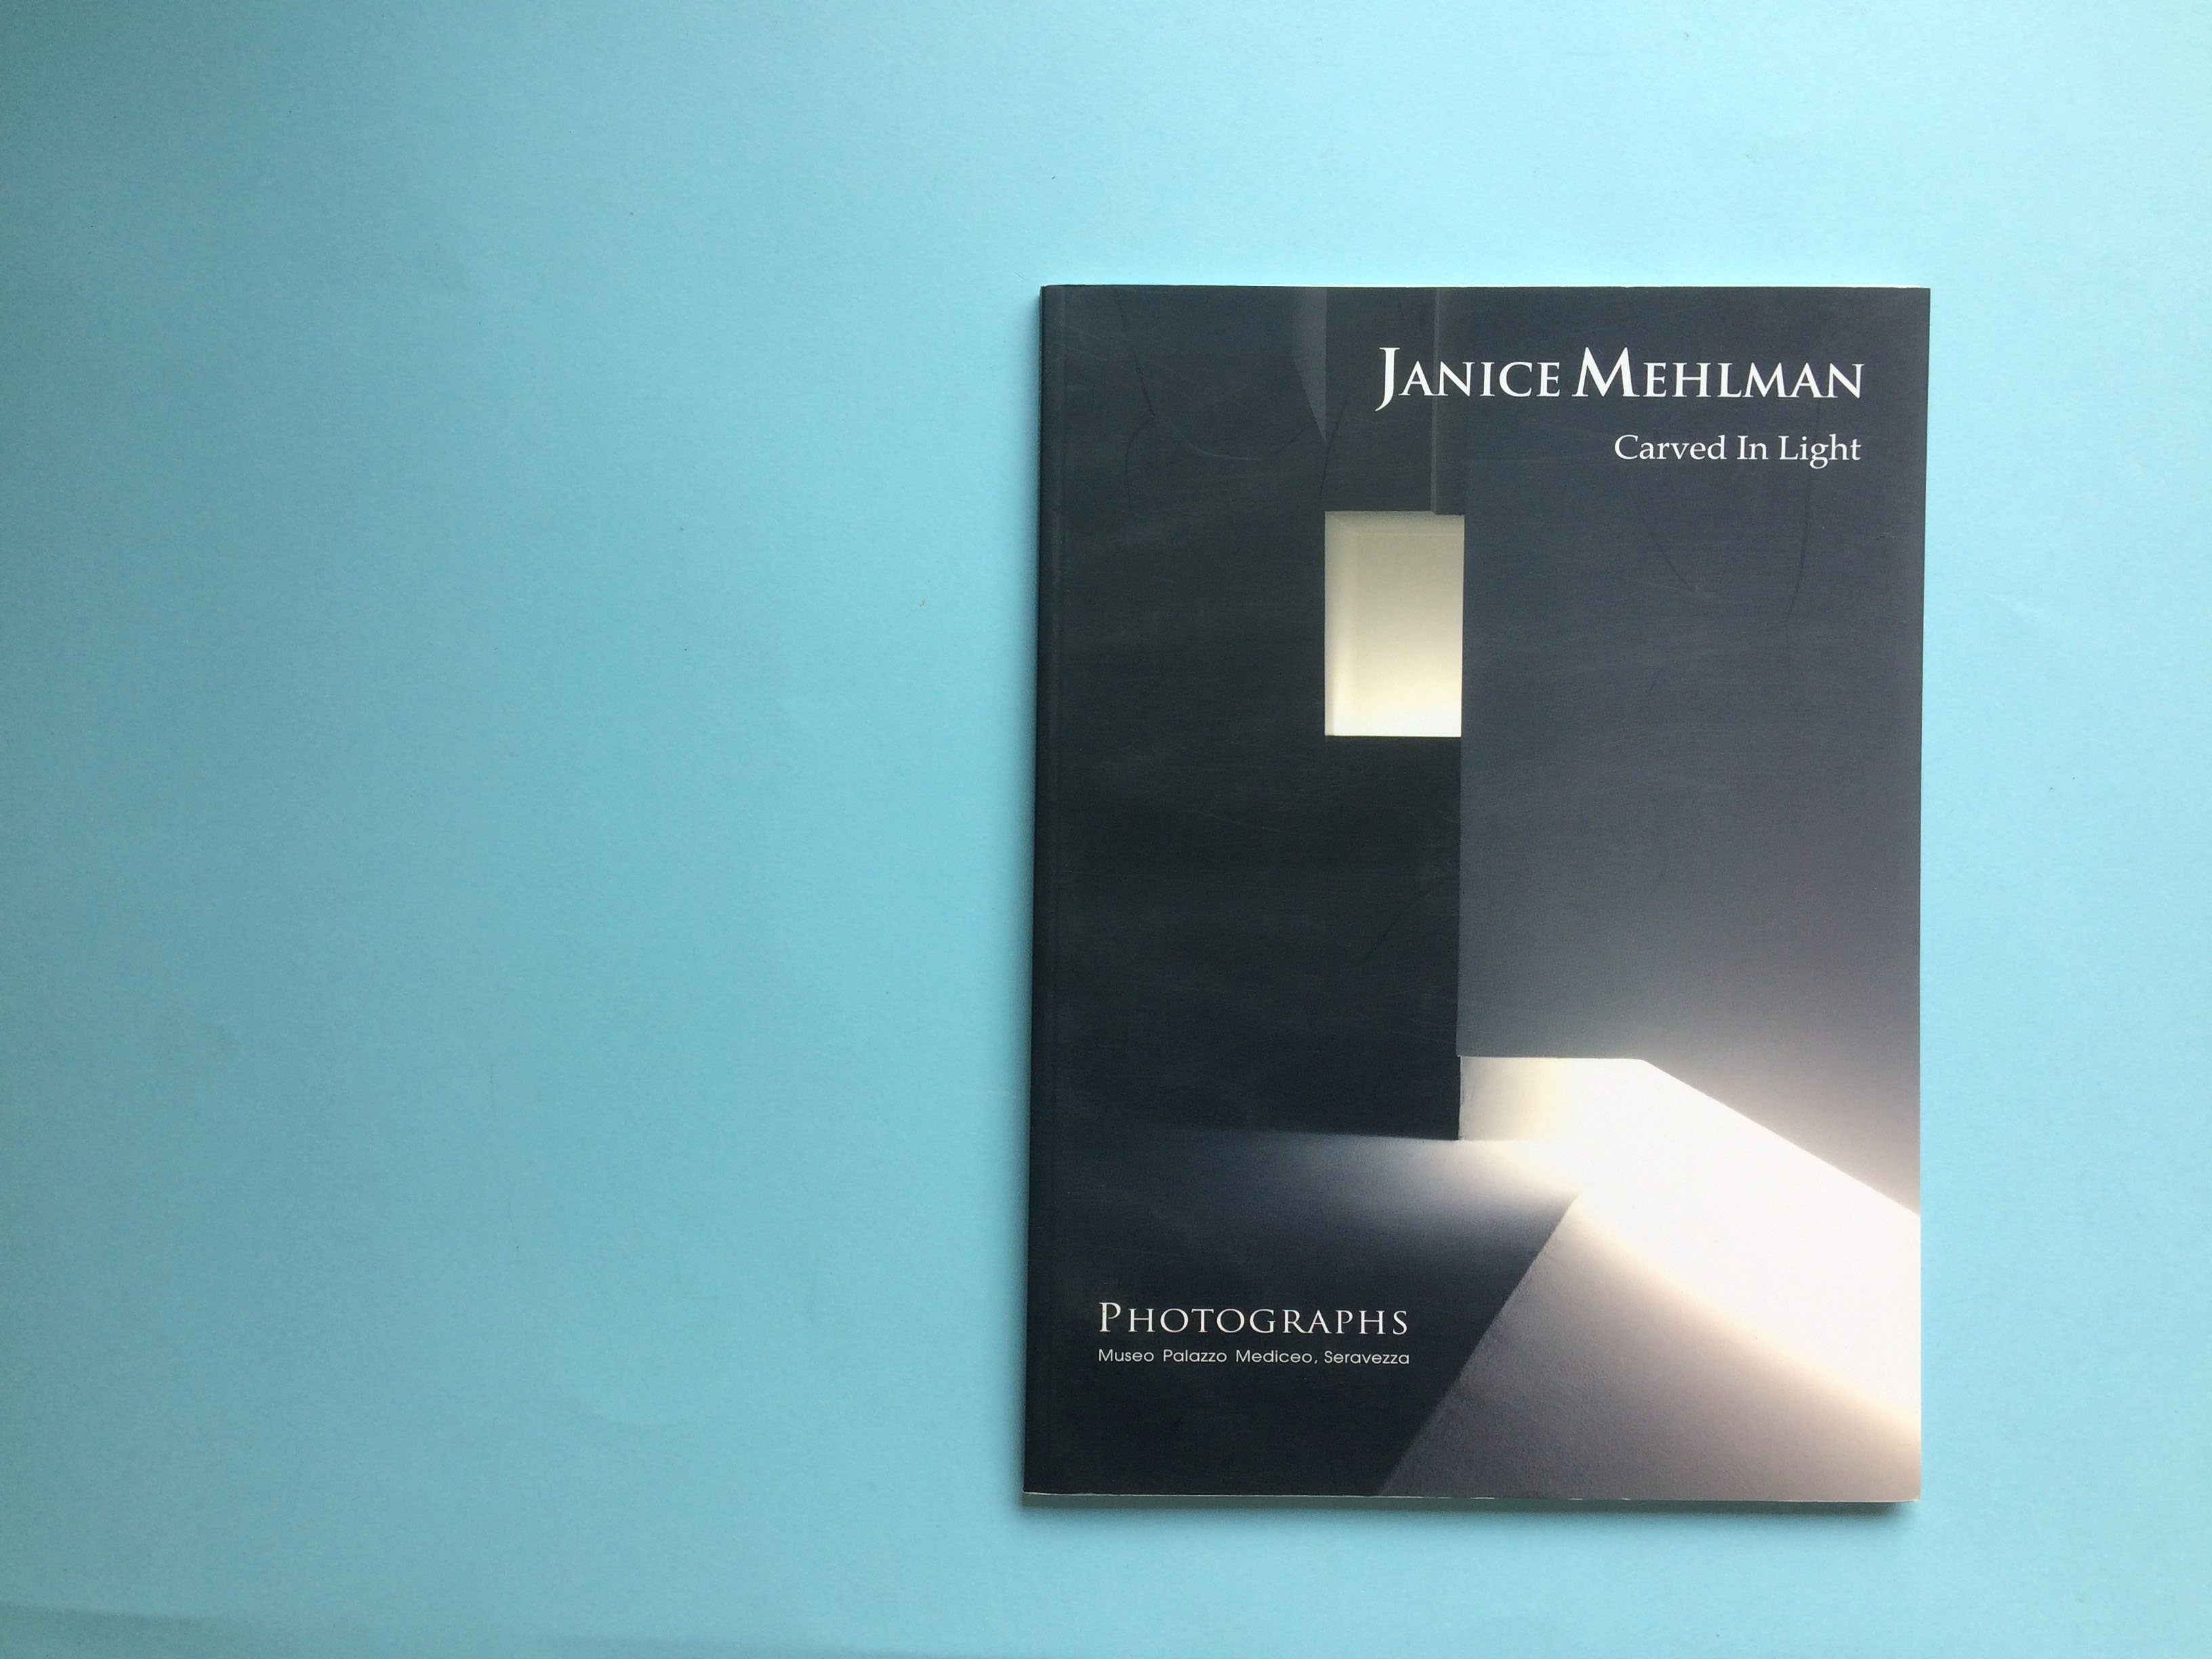 CARVED IN LIGHT / JANICE MEHLMAN